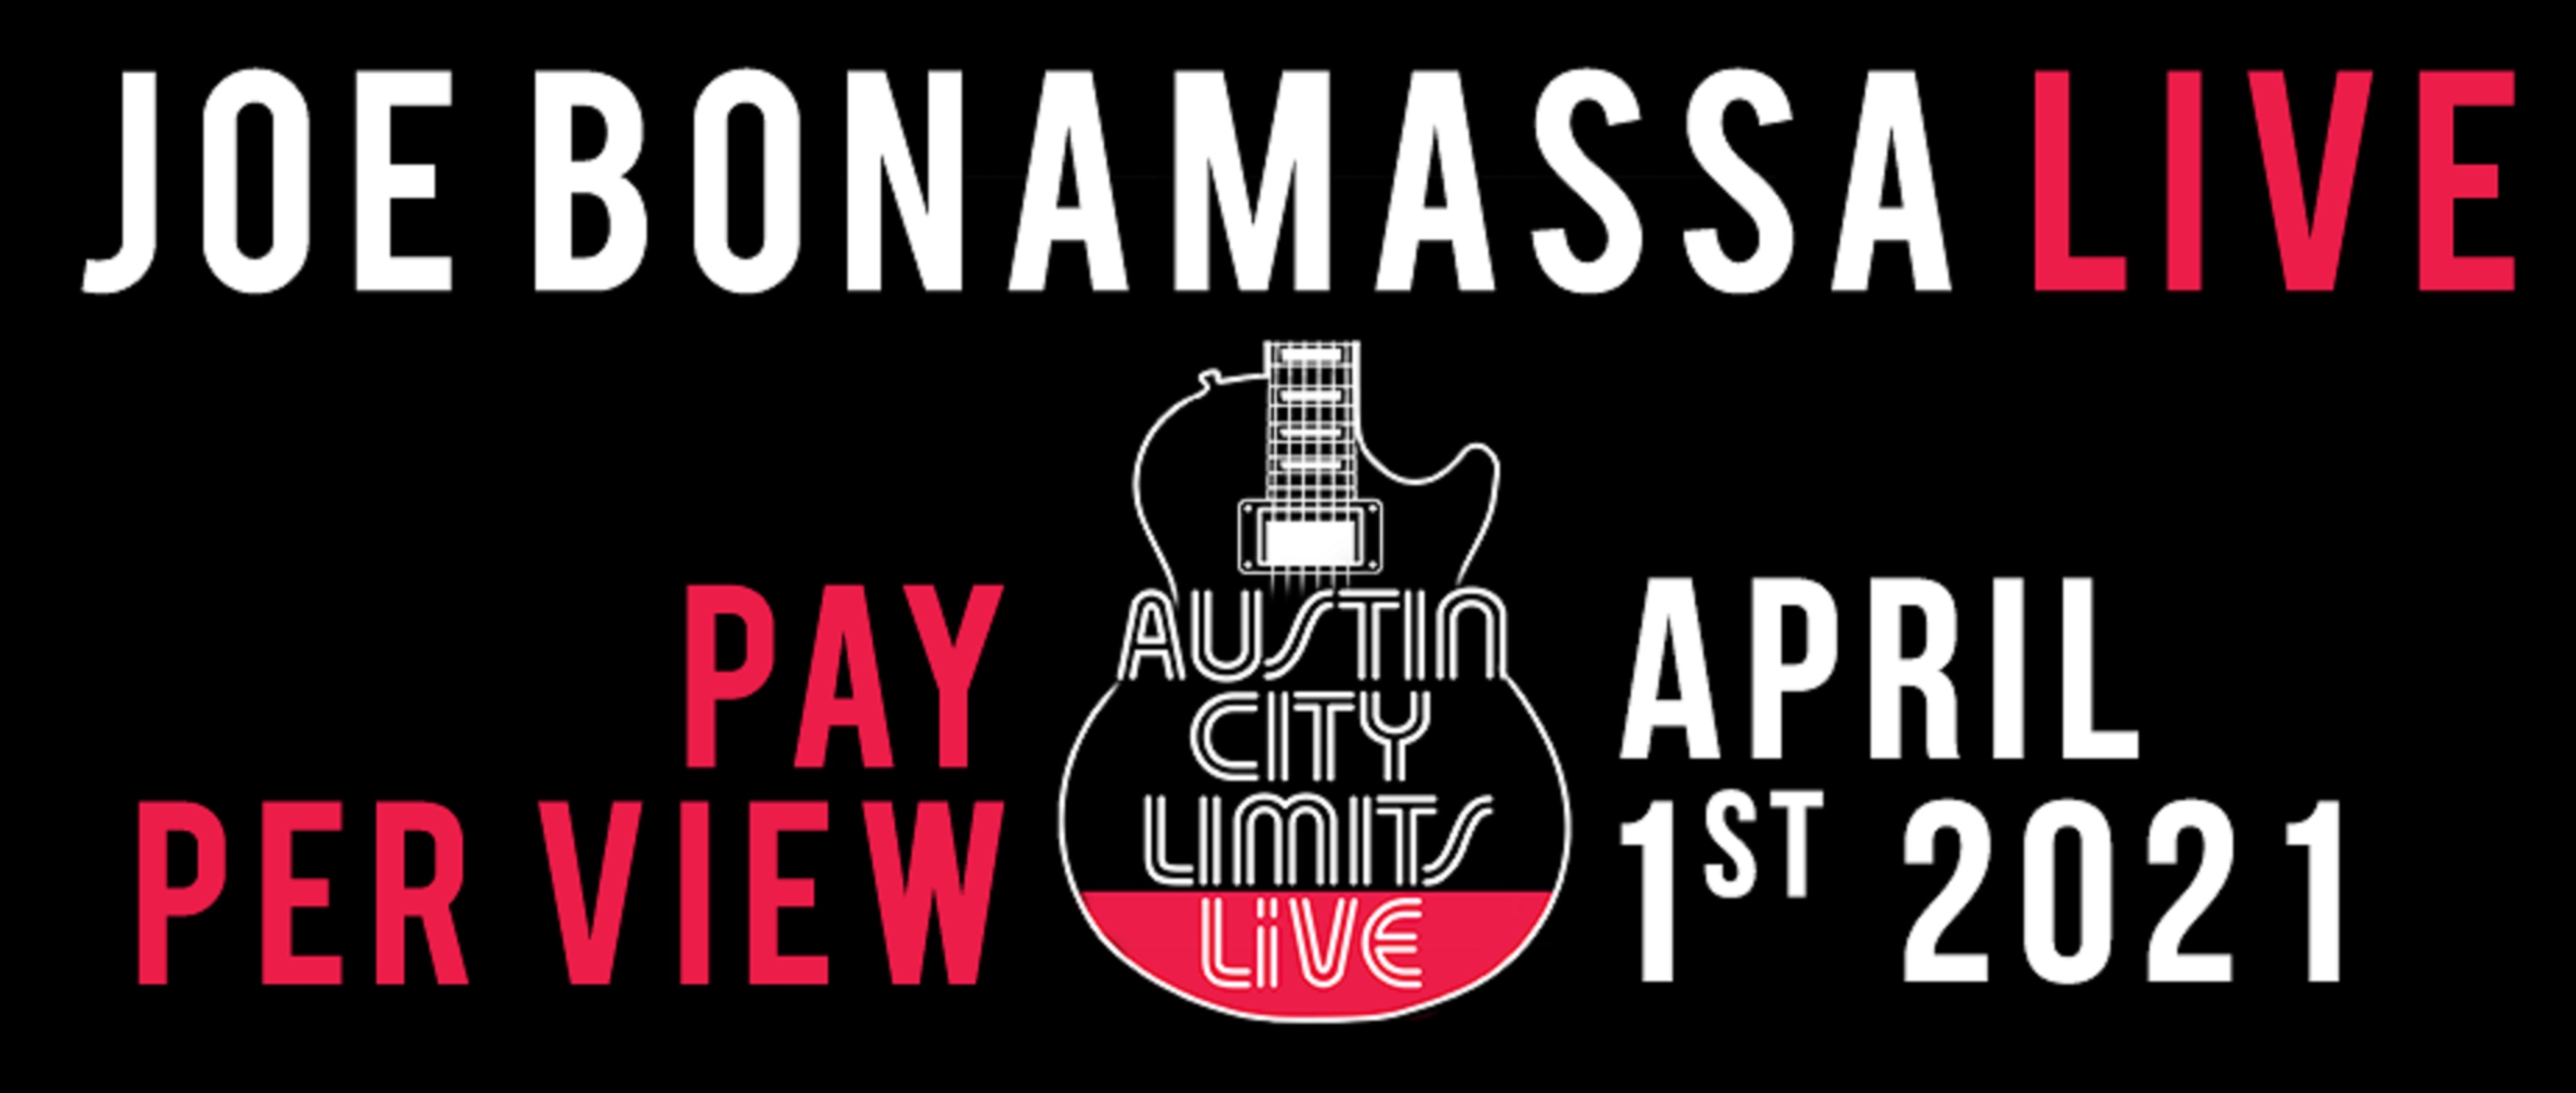 Joe Bonamassa announces fan-curated livestream event at Austin City Limits Live